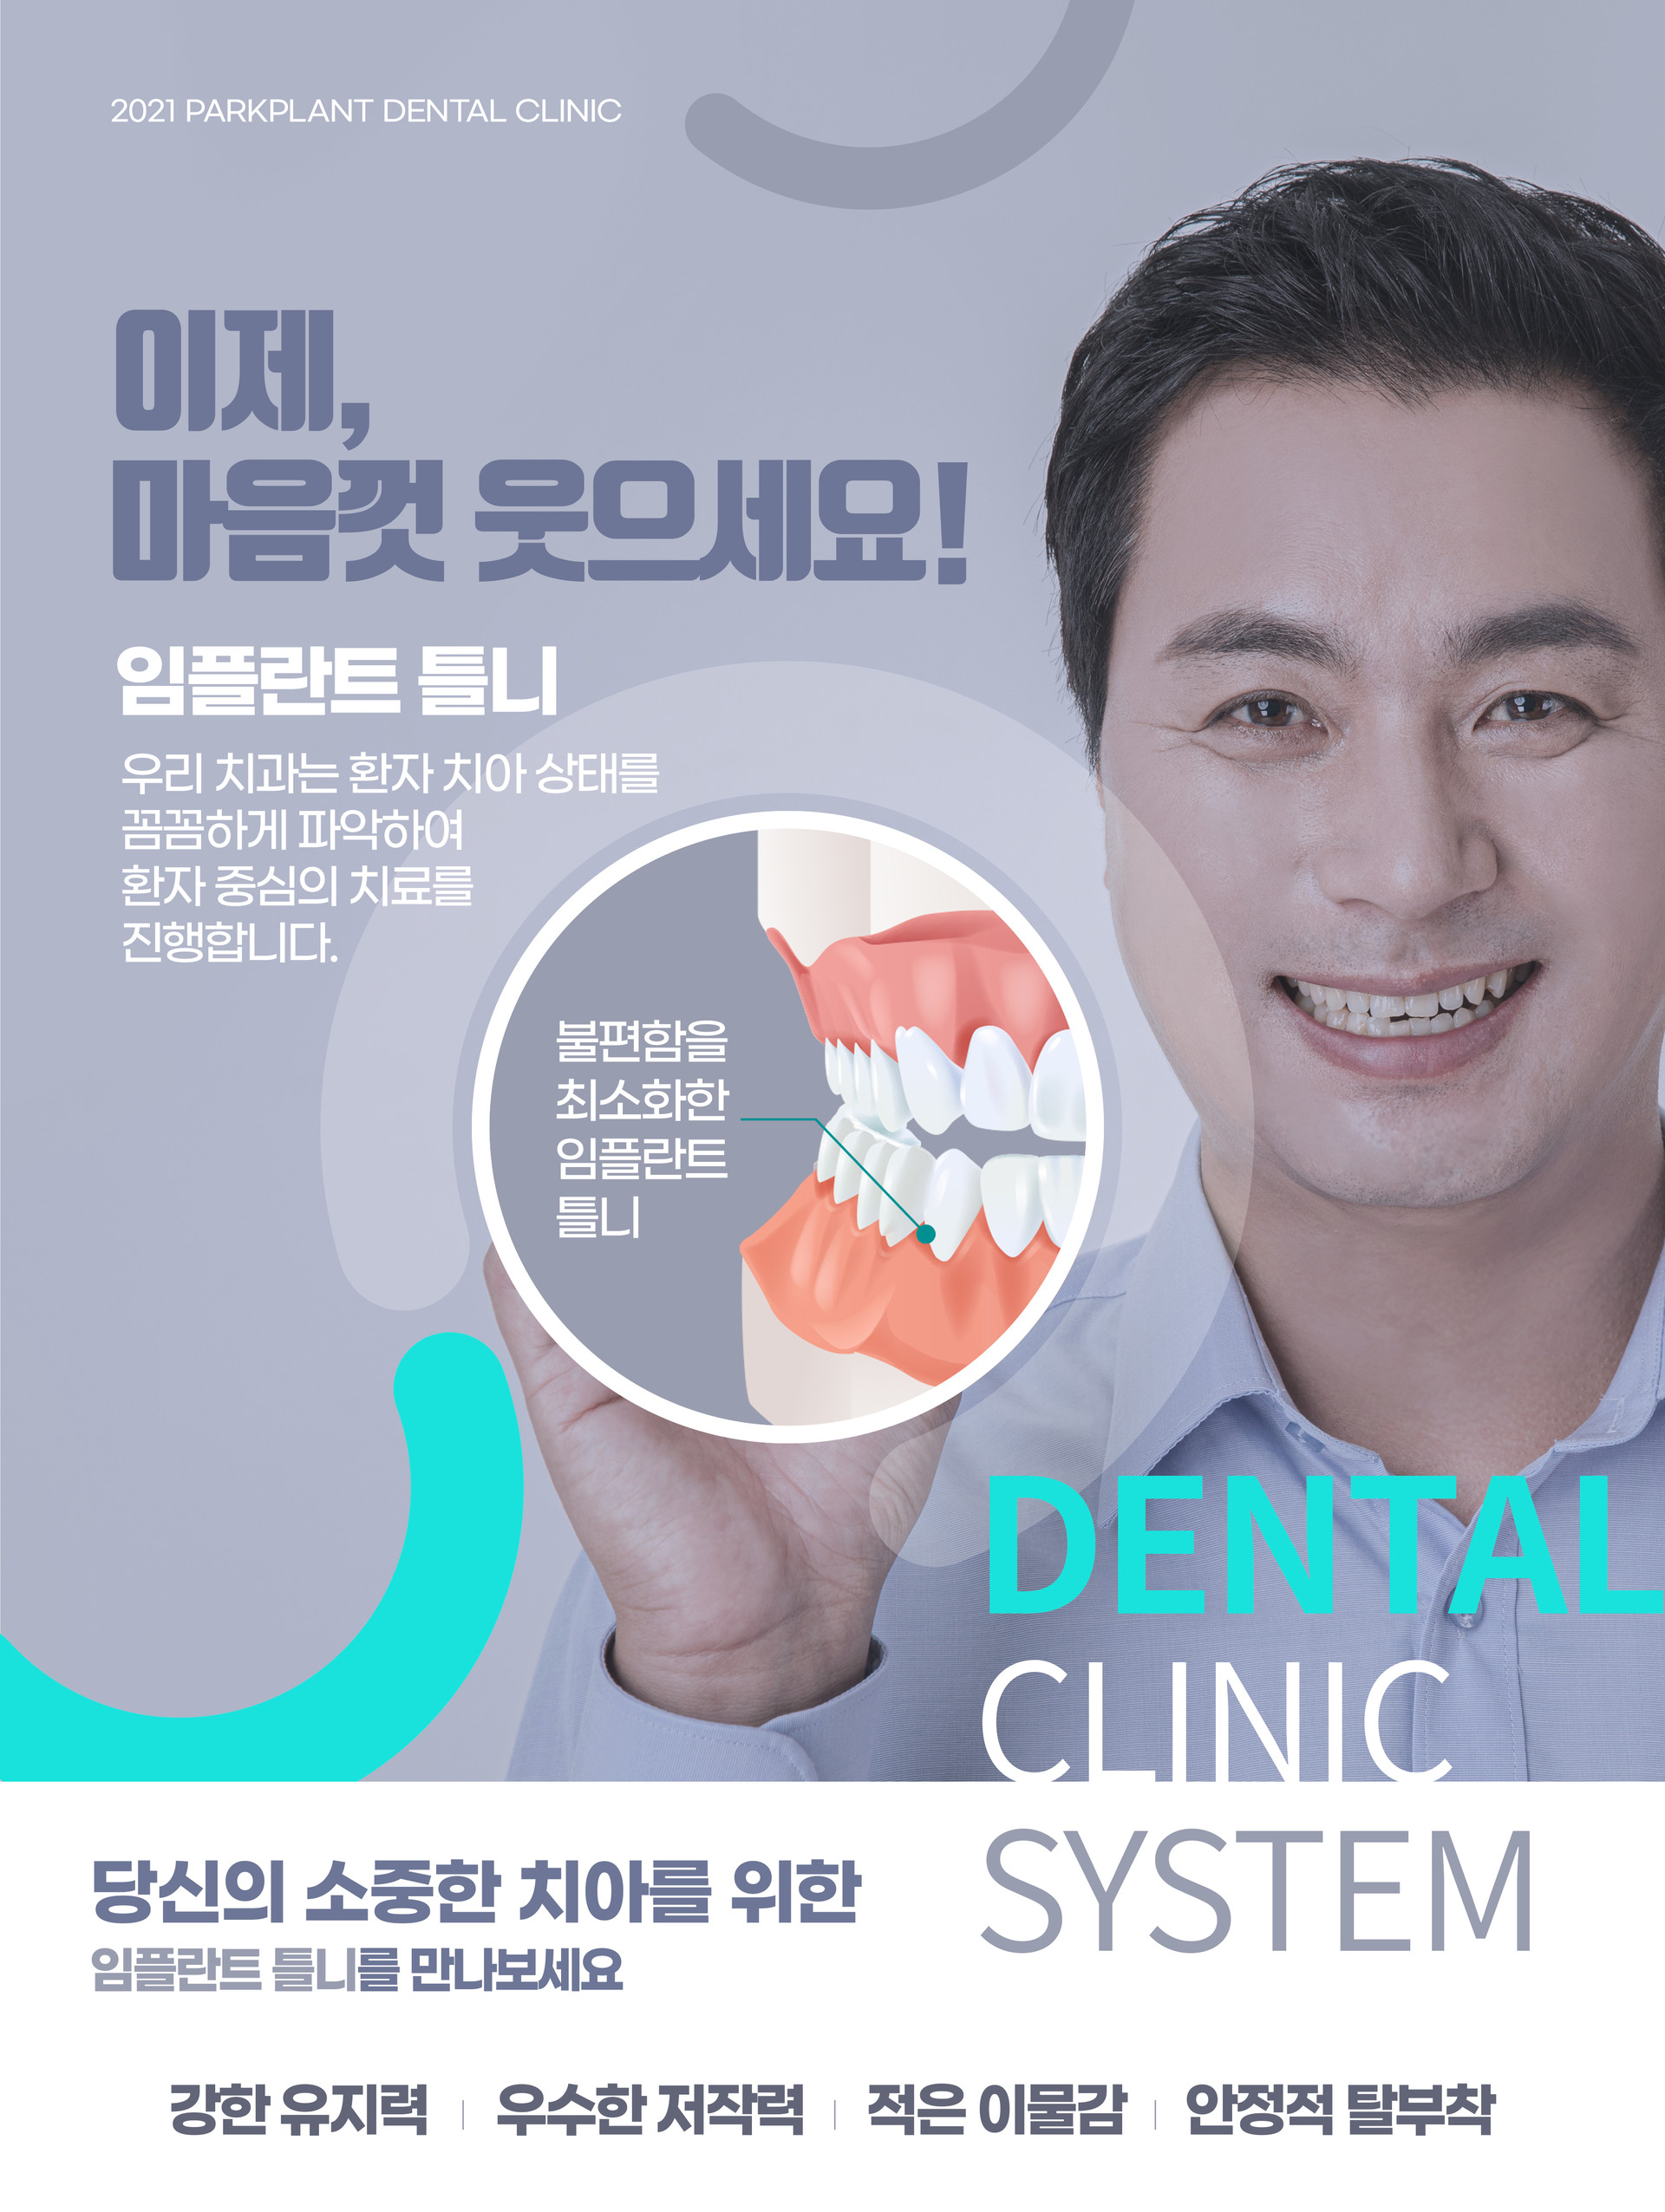 DENTAL CLINIC SYSTEM